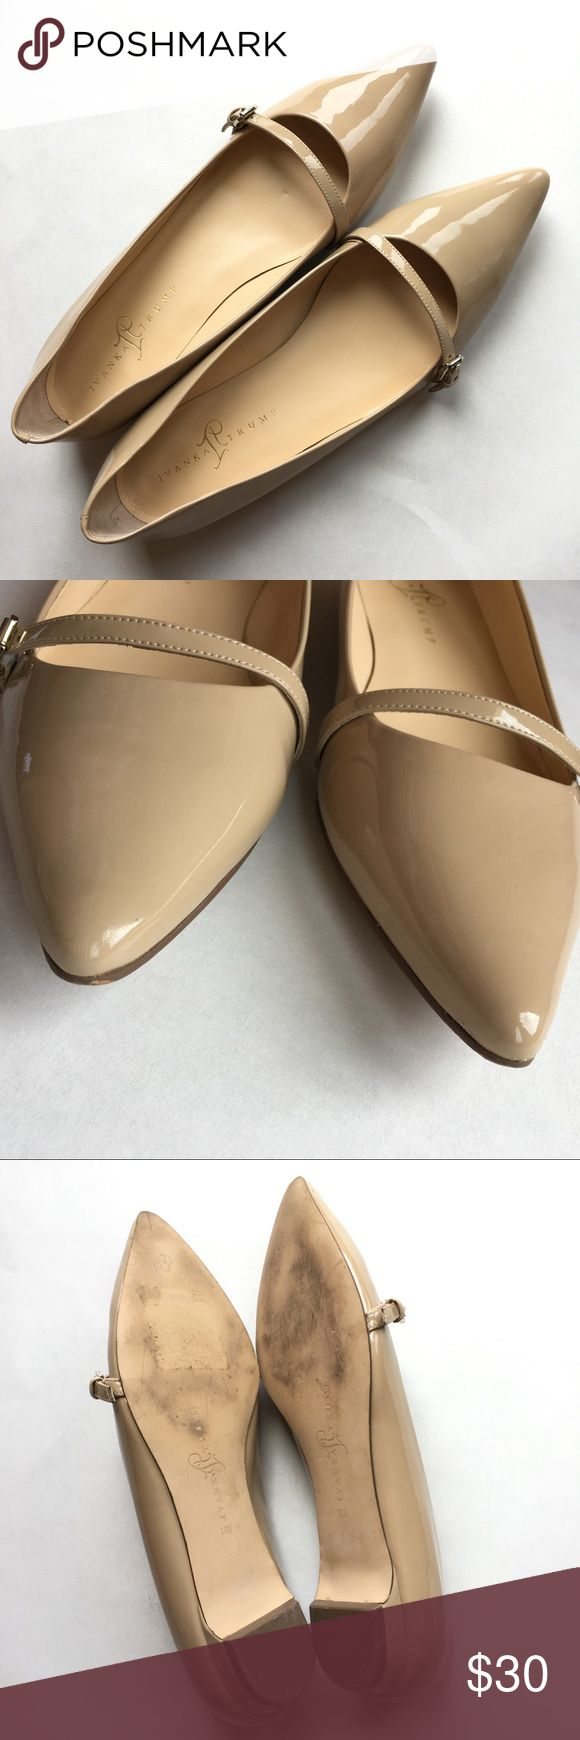 Ivanka Trump Itansley Nude Patent Leather Flats Ivanka Trump Itansley -Womens Size 10M  -Nude Patent Leather  -Adjustable strap  -Rarely worn -Heel Height: .75 inches Please refer to pictures prior to purchase (08517) Ivanka Trump Shoes Flats & Loafers